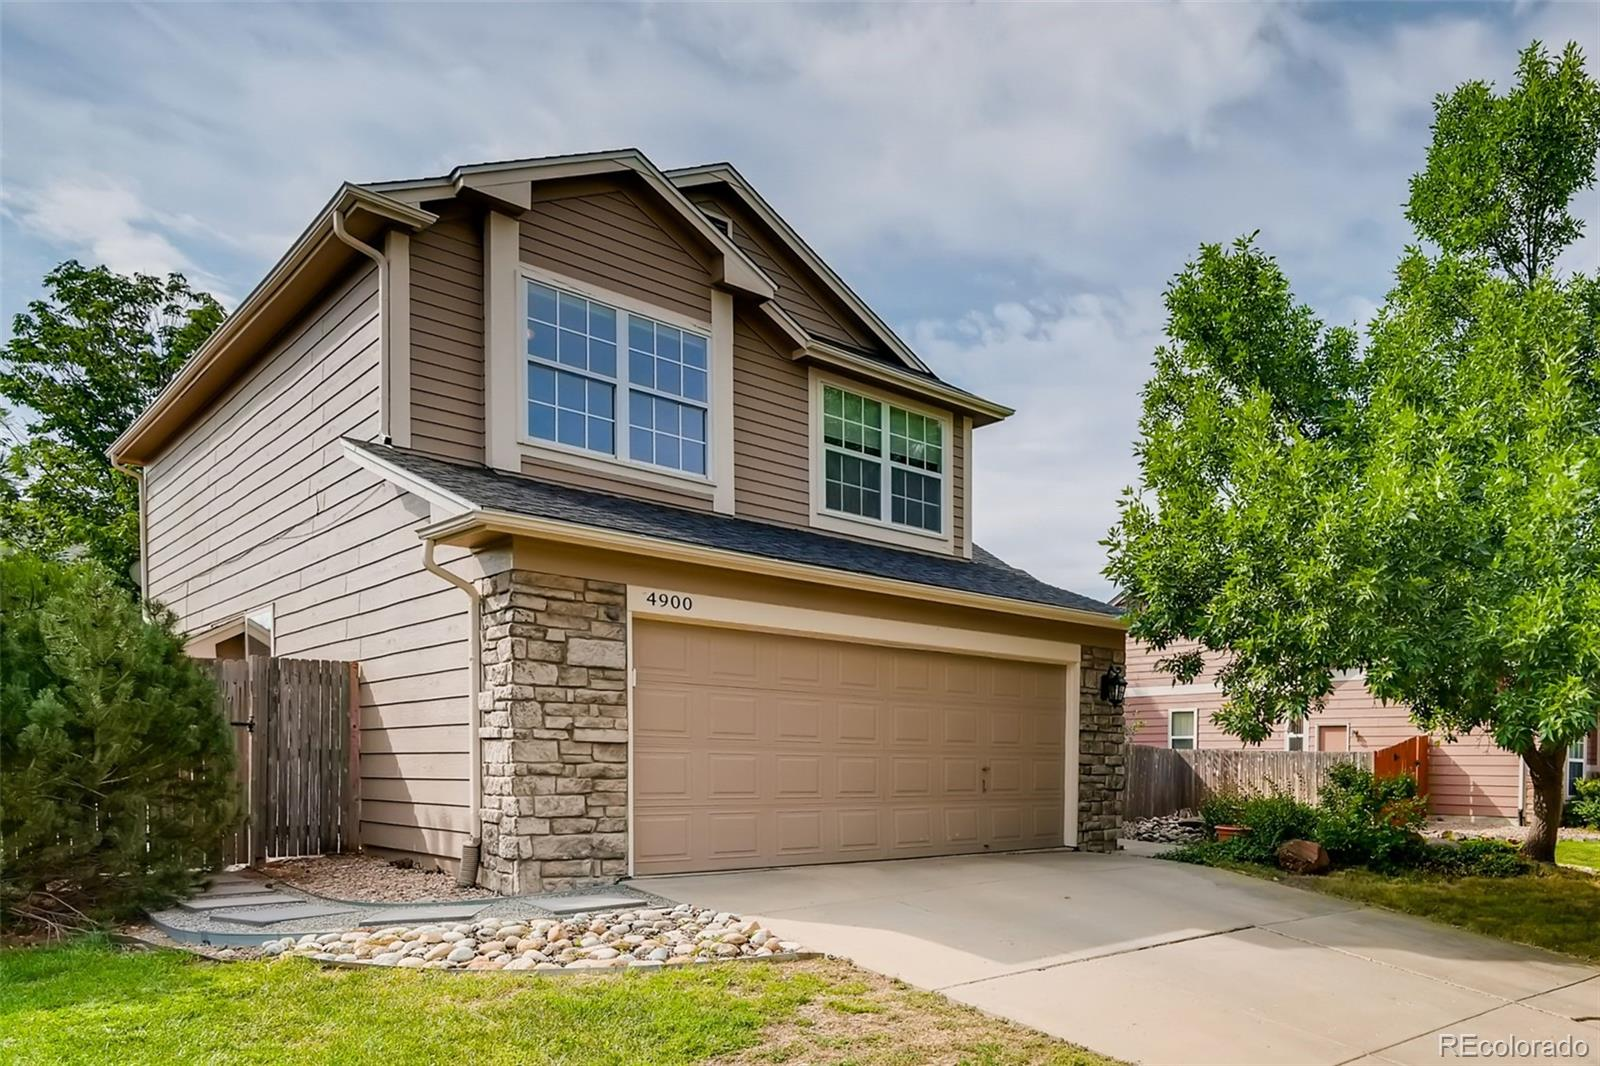 4900 W 128th Place, Broomfield CO 80020